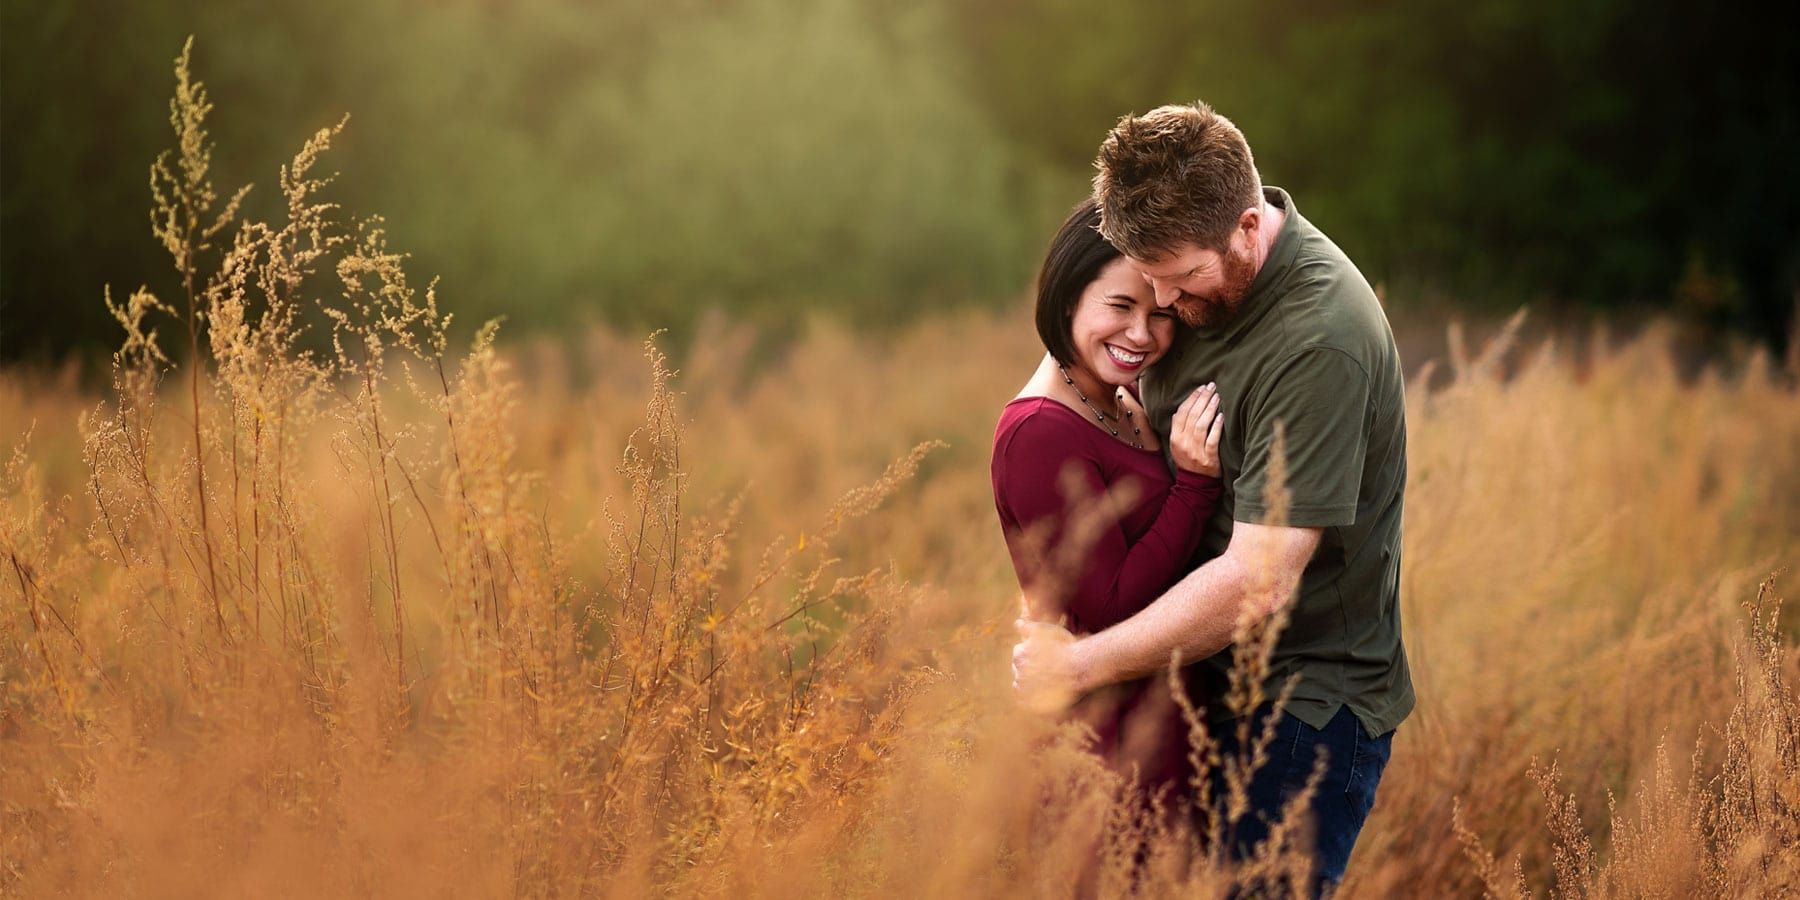 Engagement & Couples Photography, Couple standing in field